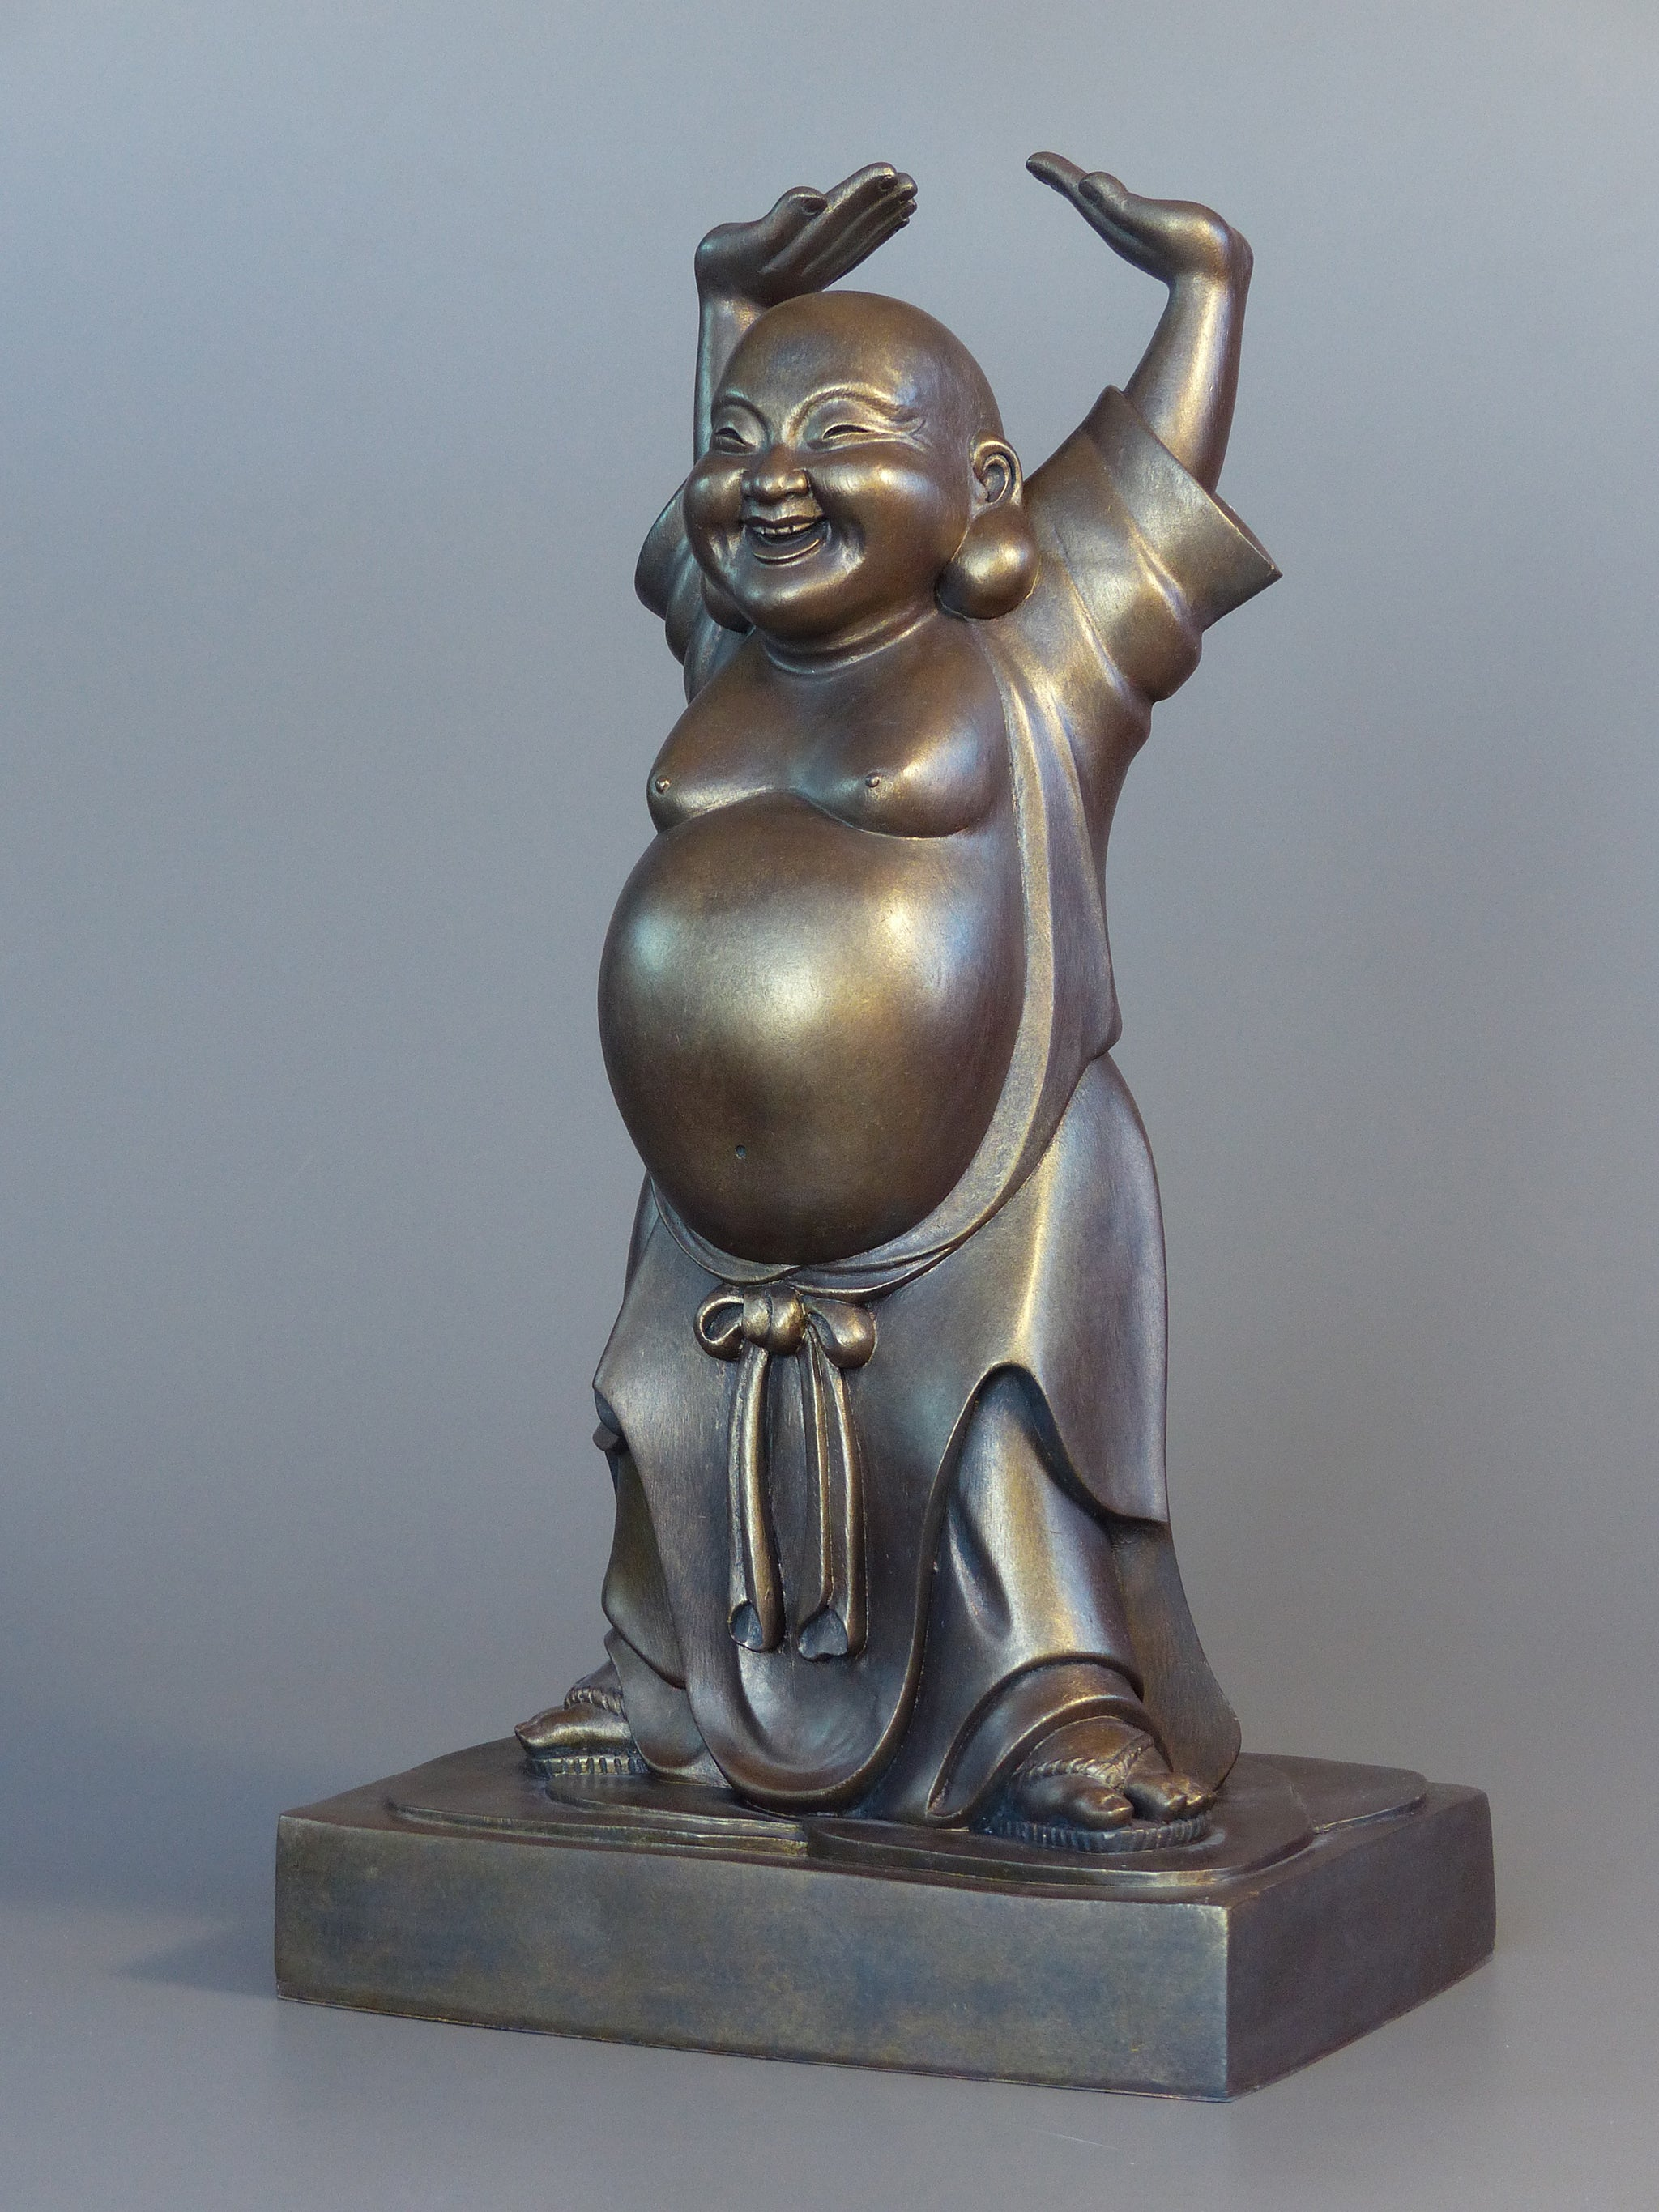 Laughing Buddha Statue Bronze 20 inches 3/4 view